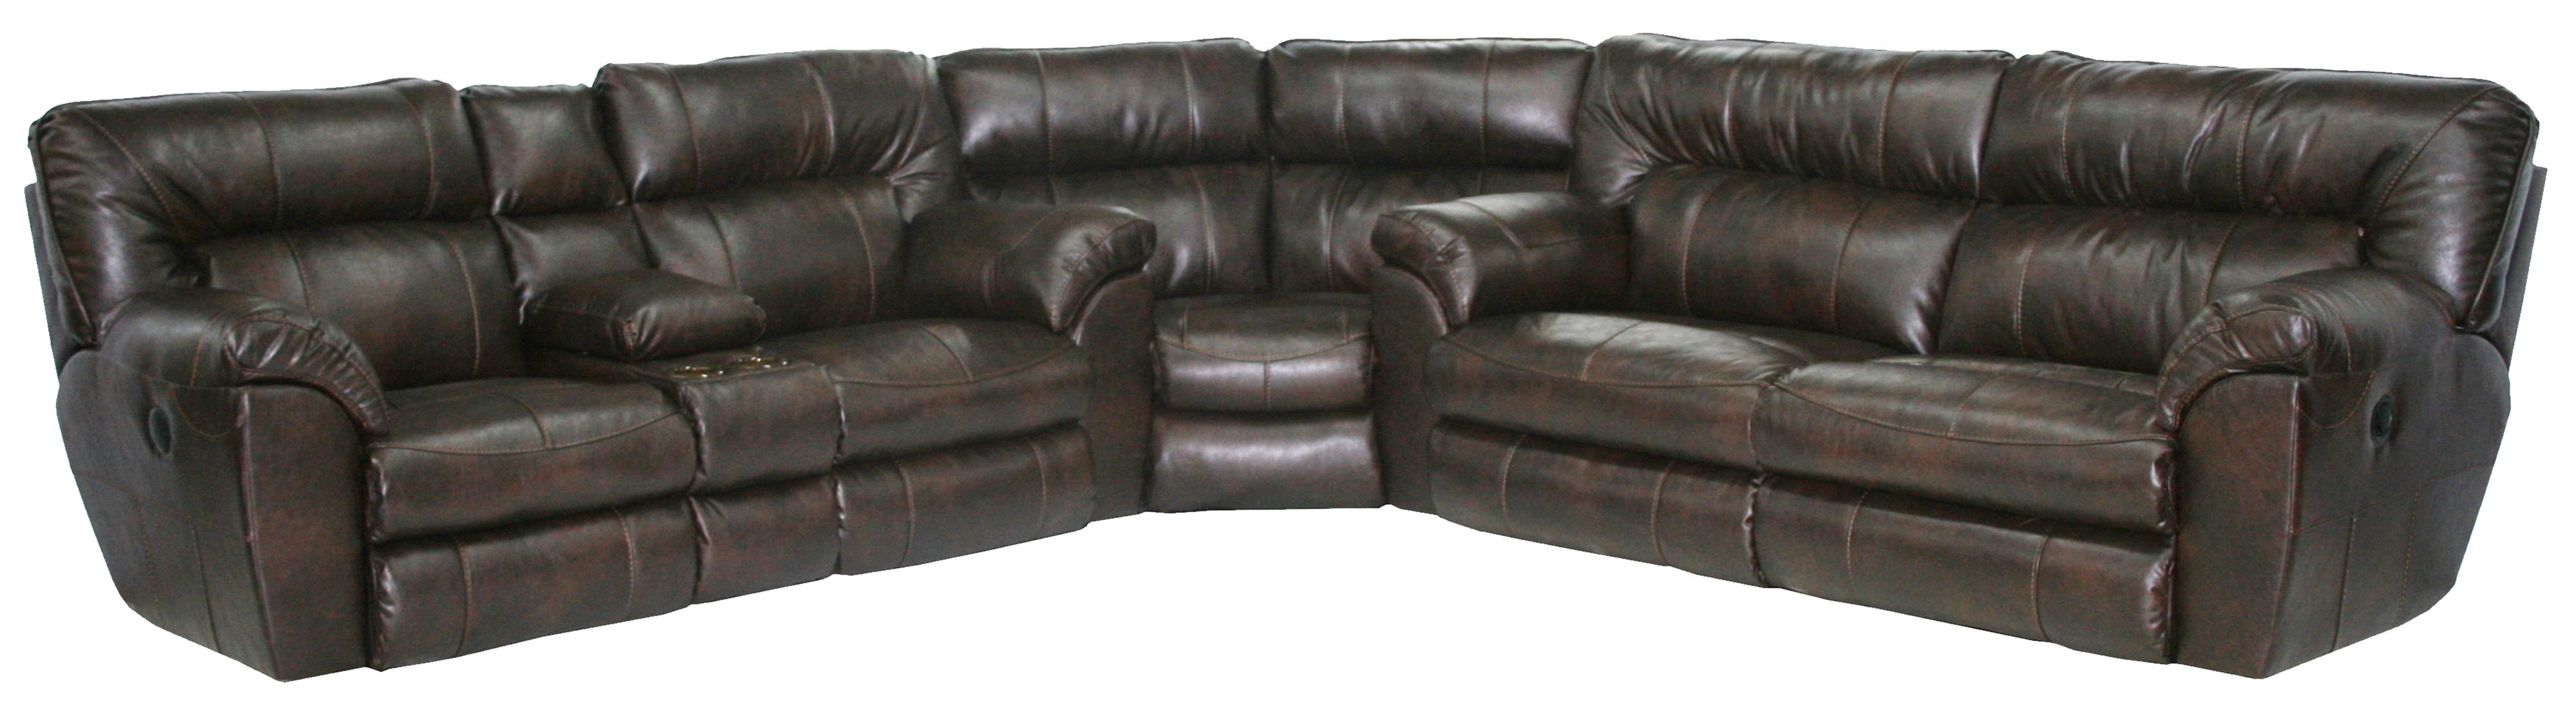 Power Reclining Sectional Sofa With Left Console By Catnapper Wolf And Gardiner Wolf Furniture